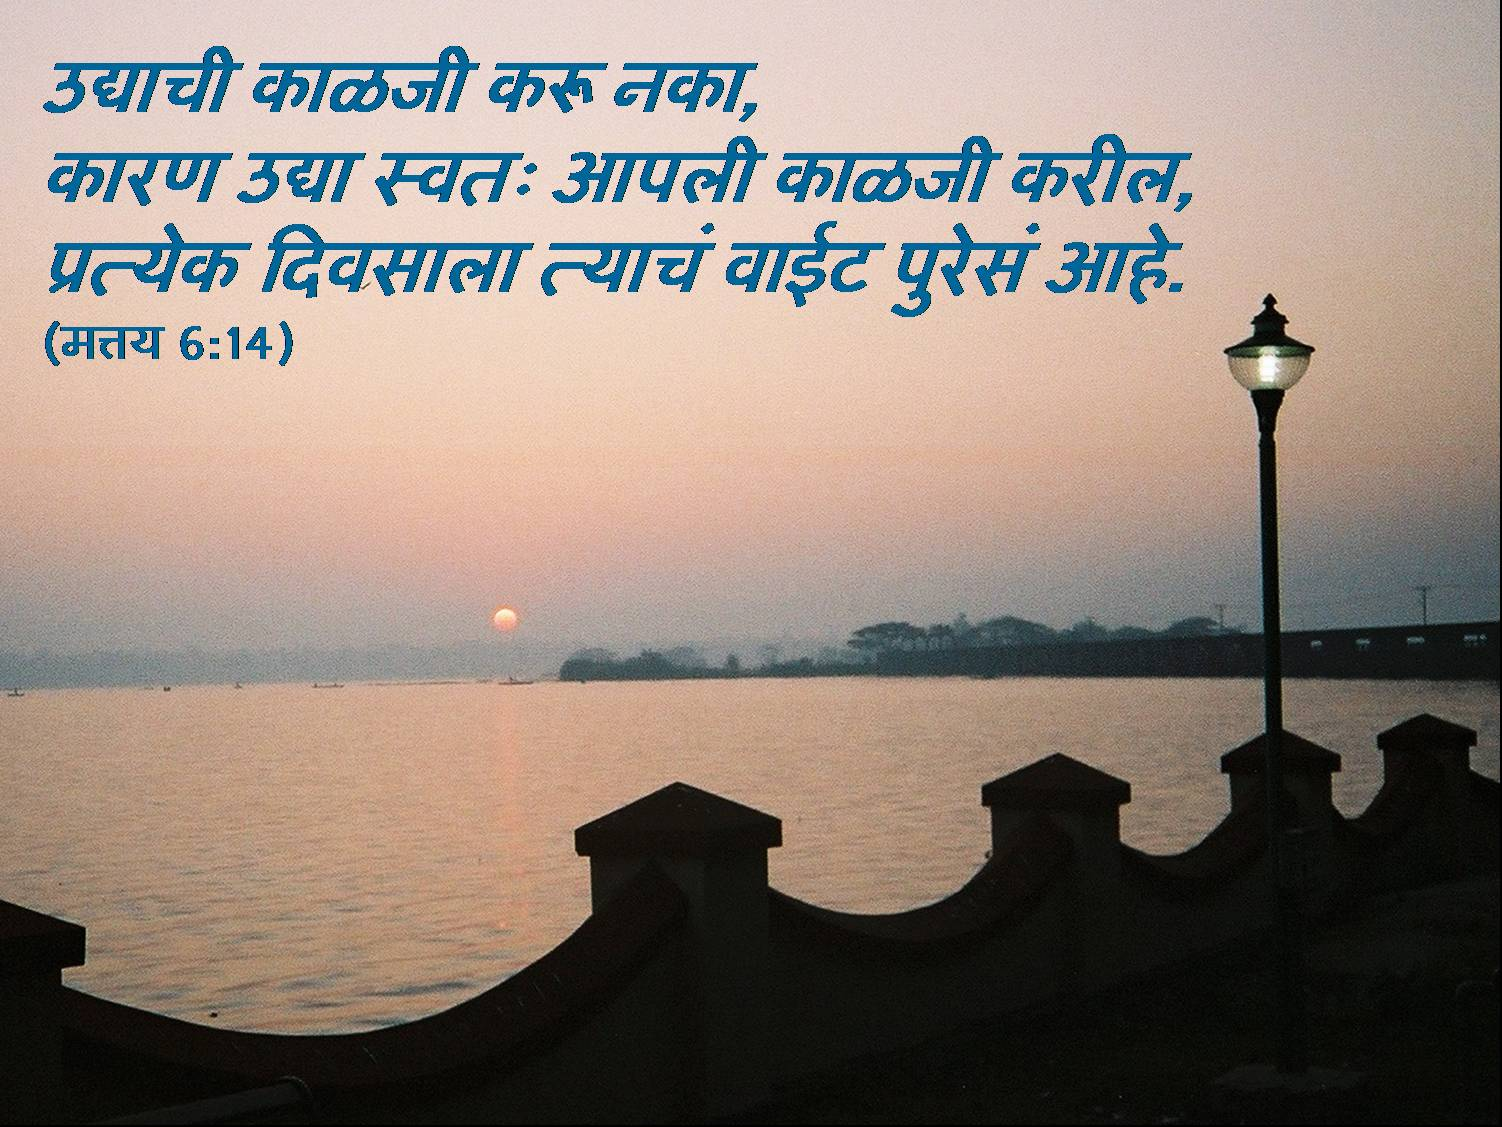 Marathi Images Wallpapers